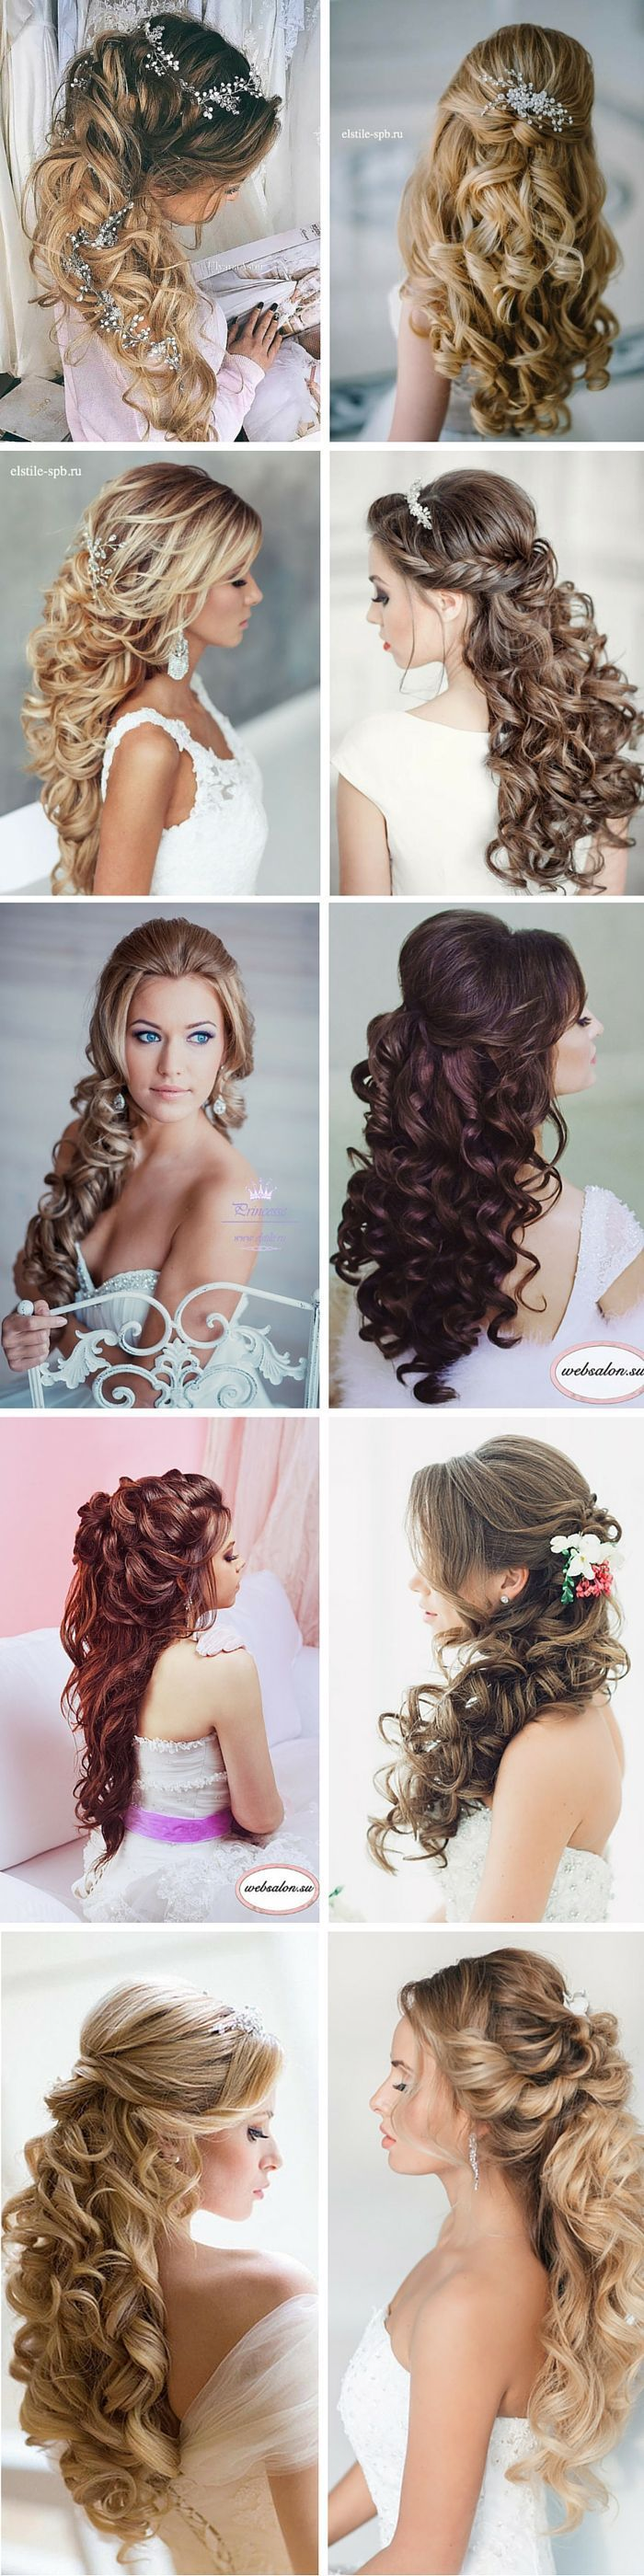 32 best • ☆BRIDE HAIRSTYLE☆ • images on Pinterest